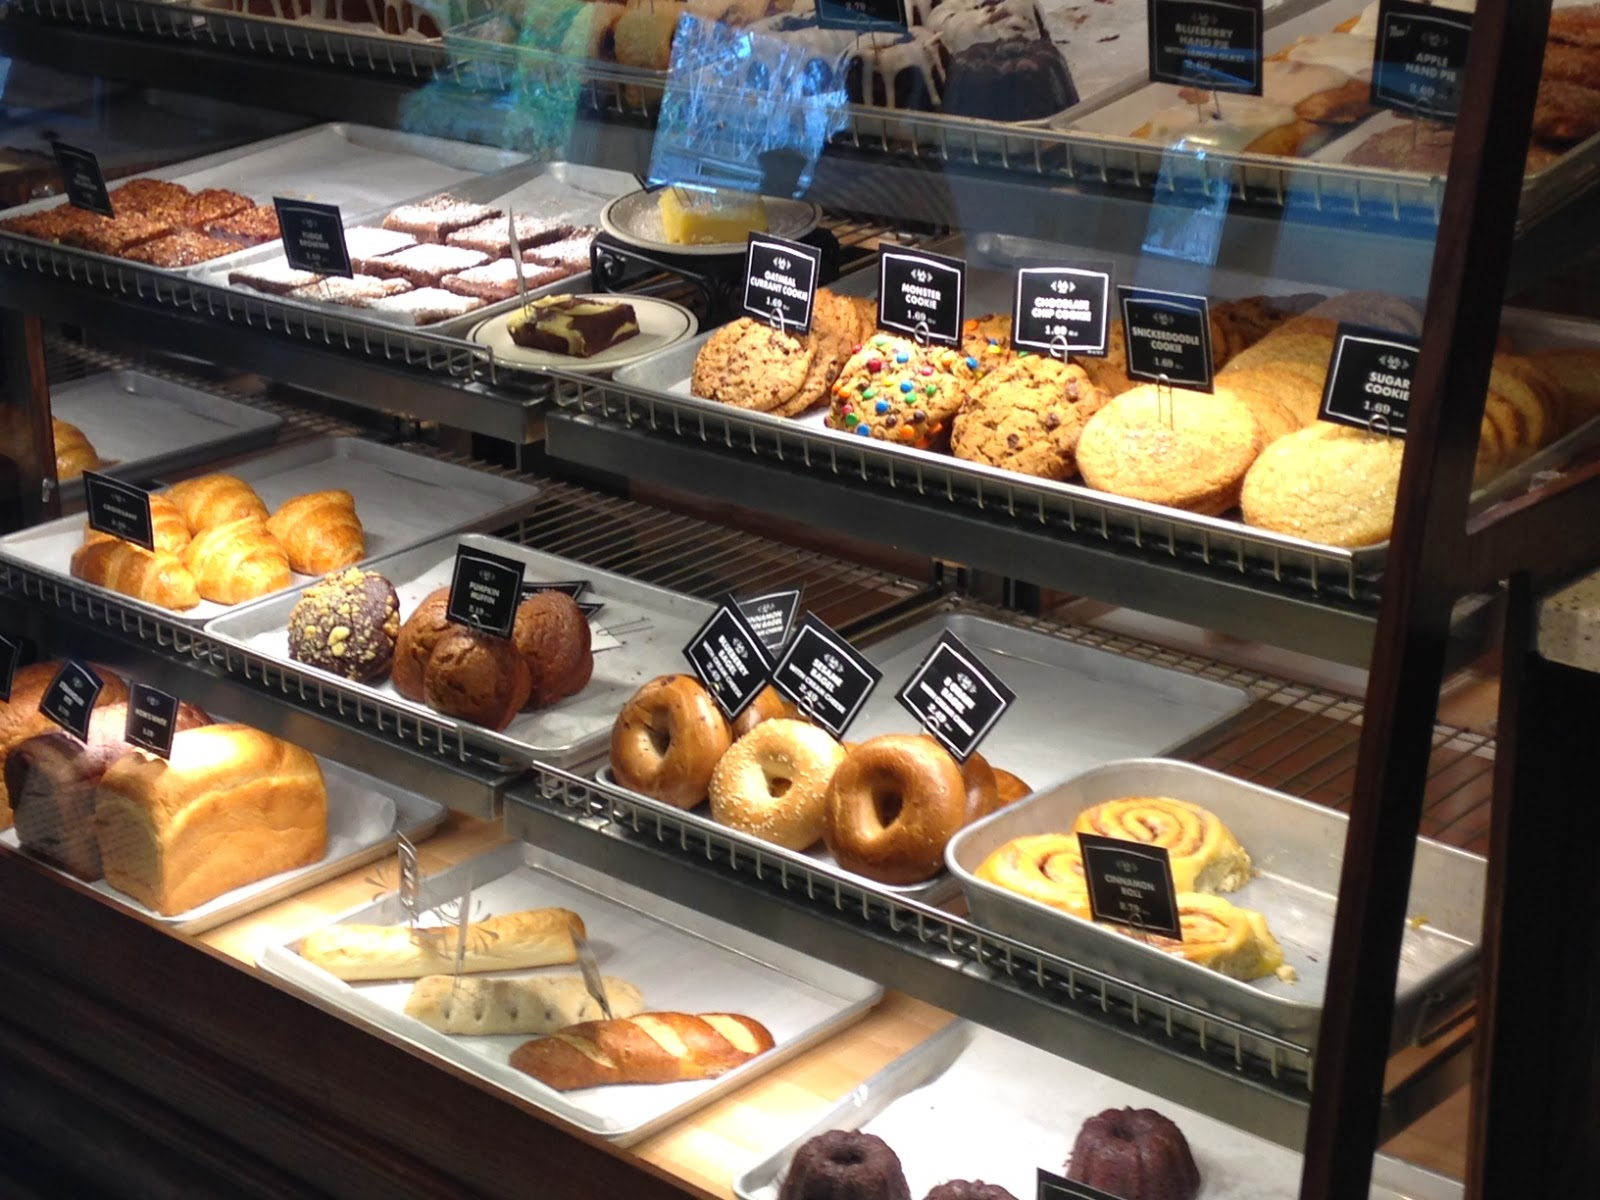 The Pastry Chef's Baking: Cafe review: Corner Bakery Cafe